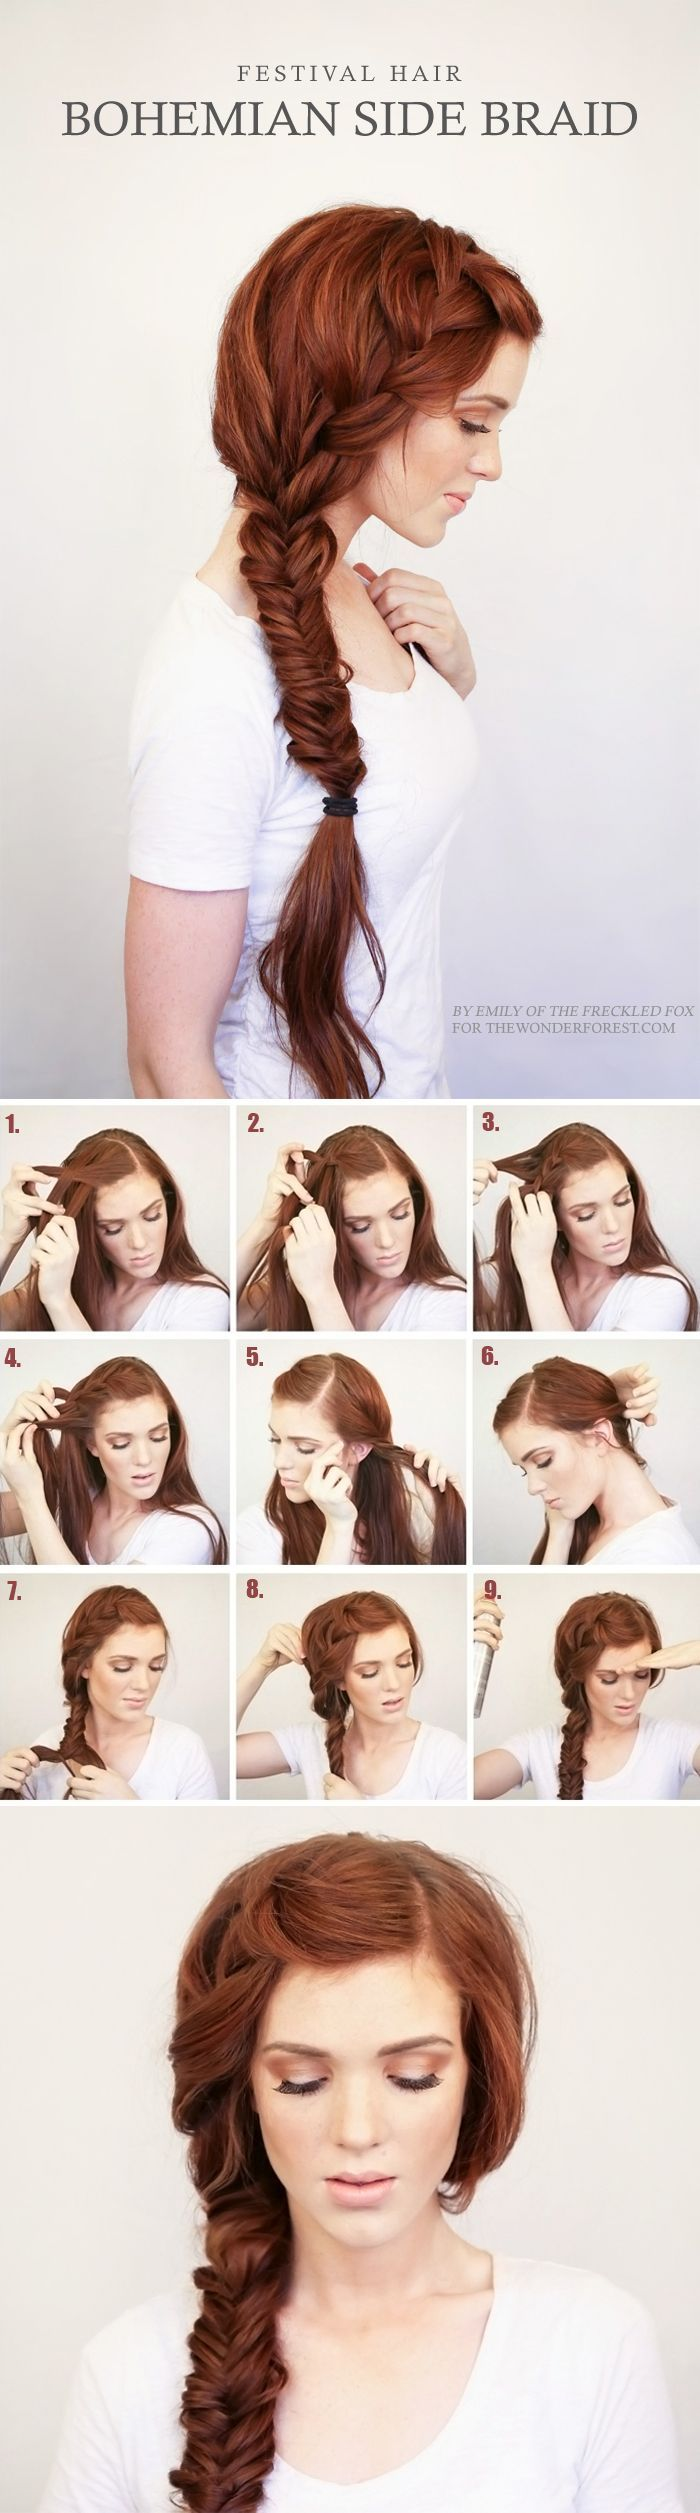 DIY side braid boho bridal hairstyle idea // Tutorial for your bridal hairstyle #tutorial #bride #hairstyle